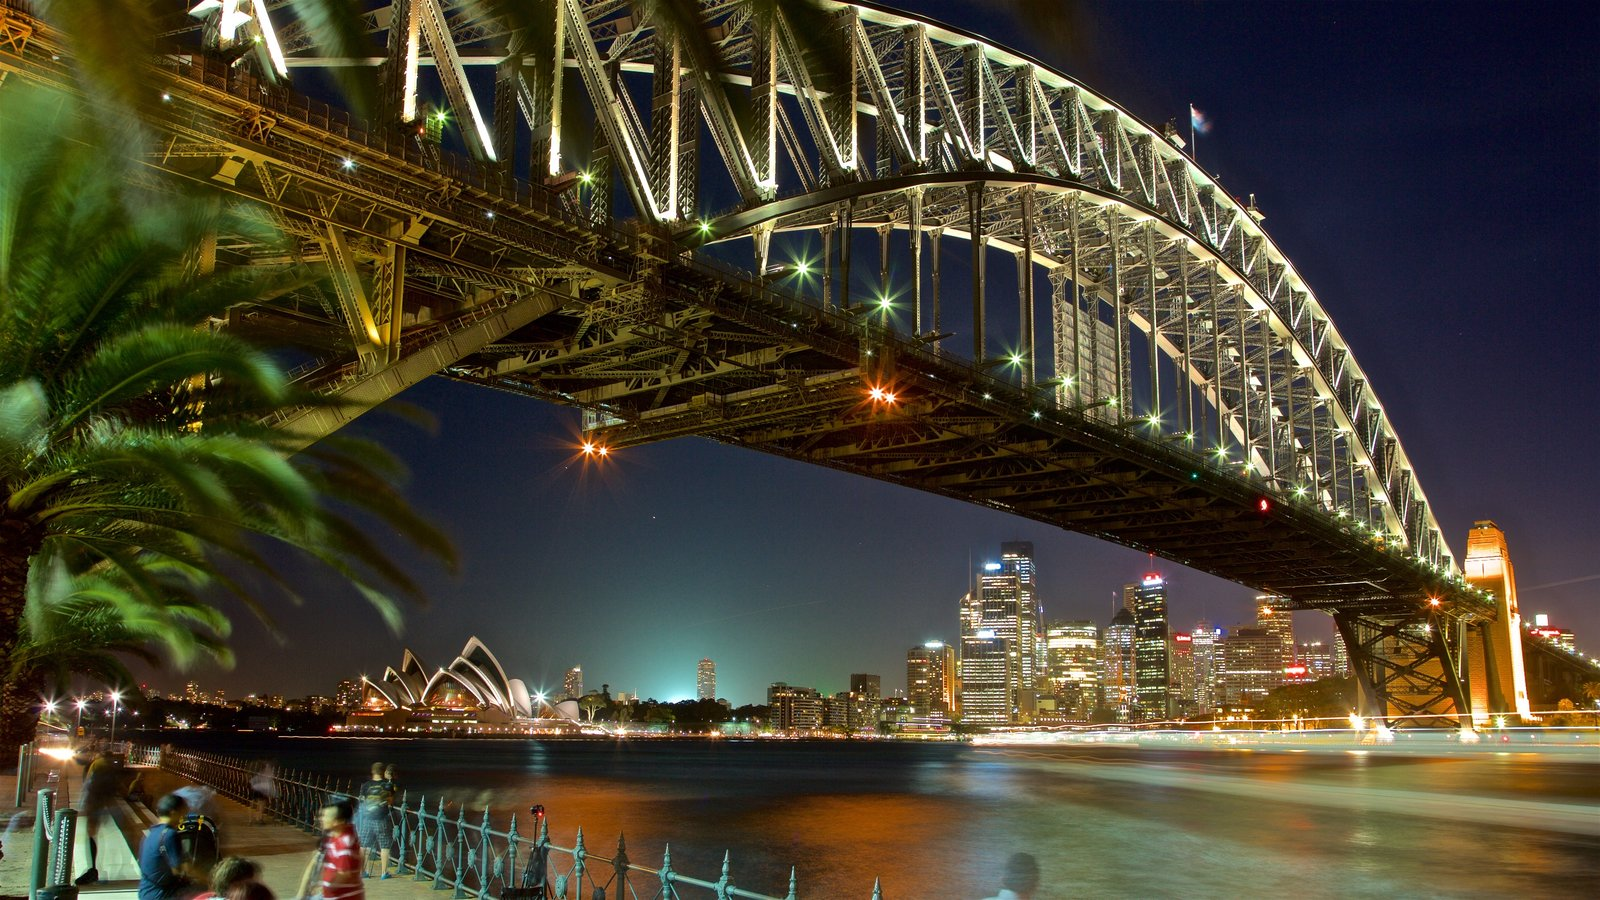 Sydney Harbour Bridge featuring night scenes, a city and a river or creek